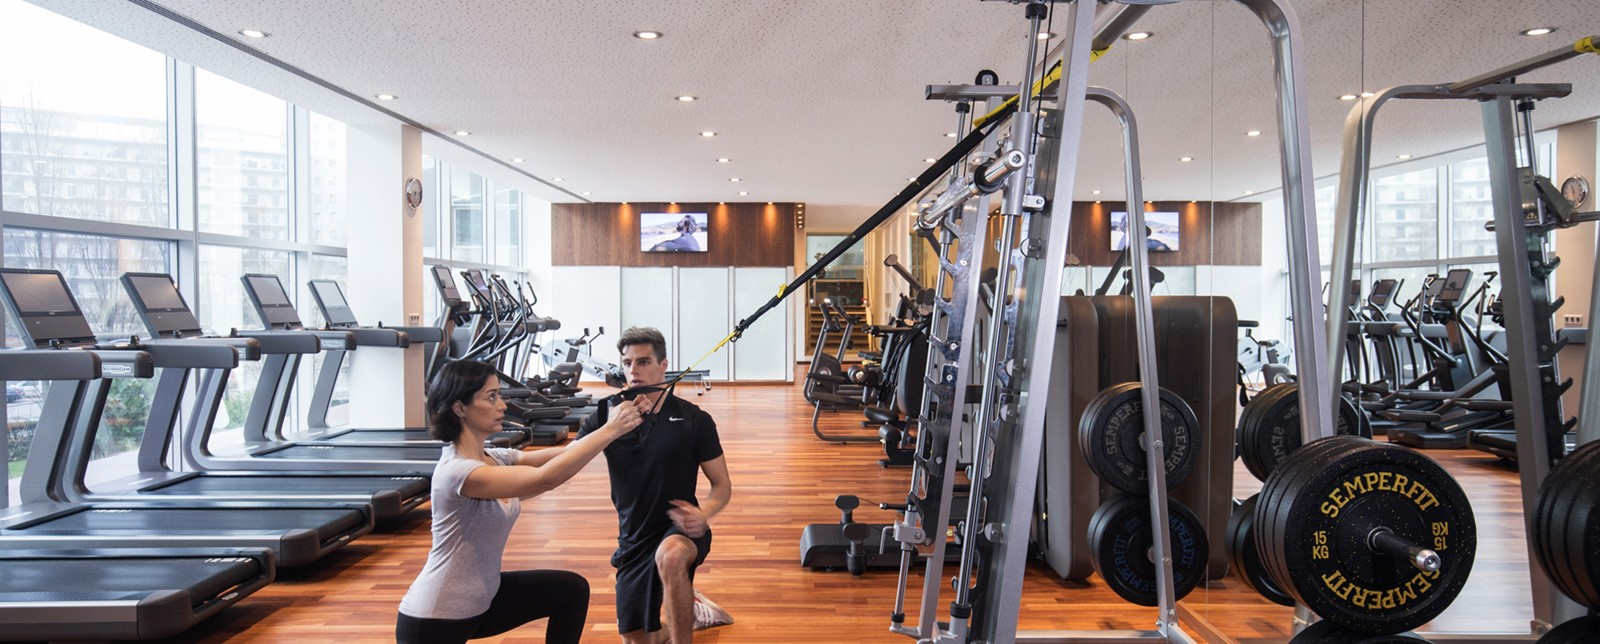 personal trainer do ginásio do corinthia lisbon